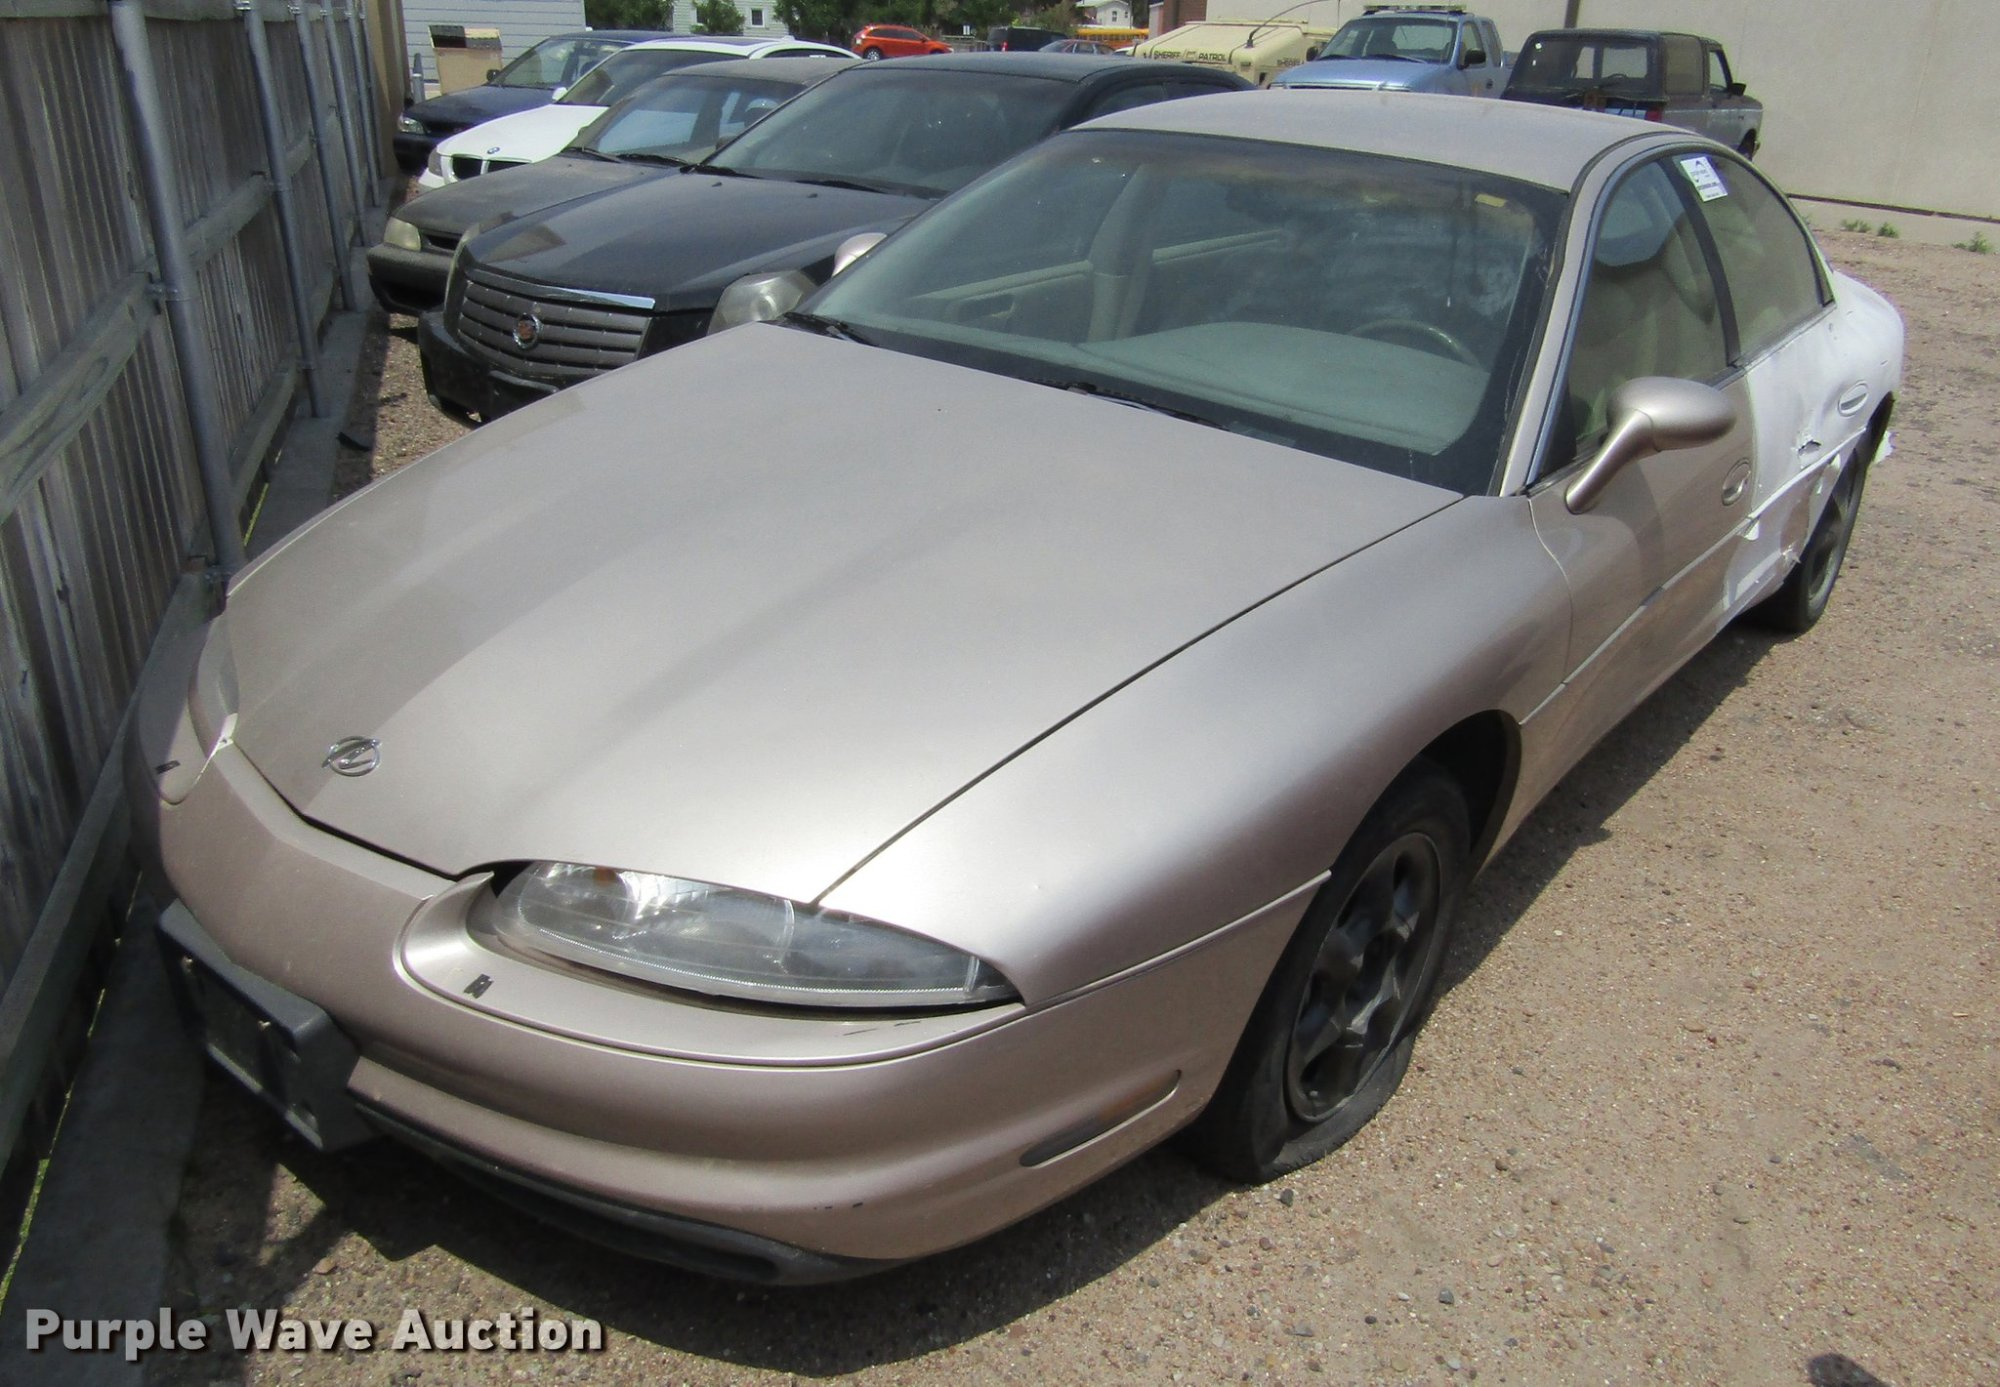 hight resolution of dd5716 image for item dd5716 1998 oldsmobile aurora